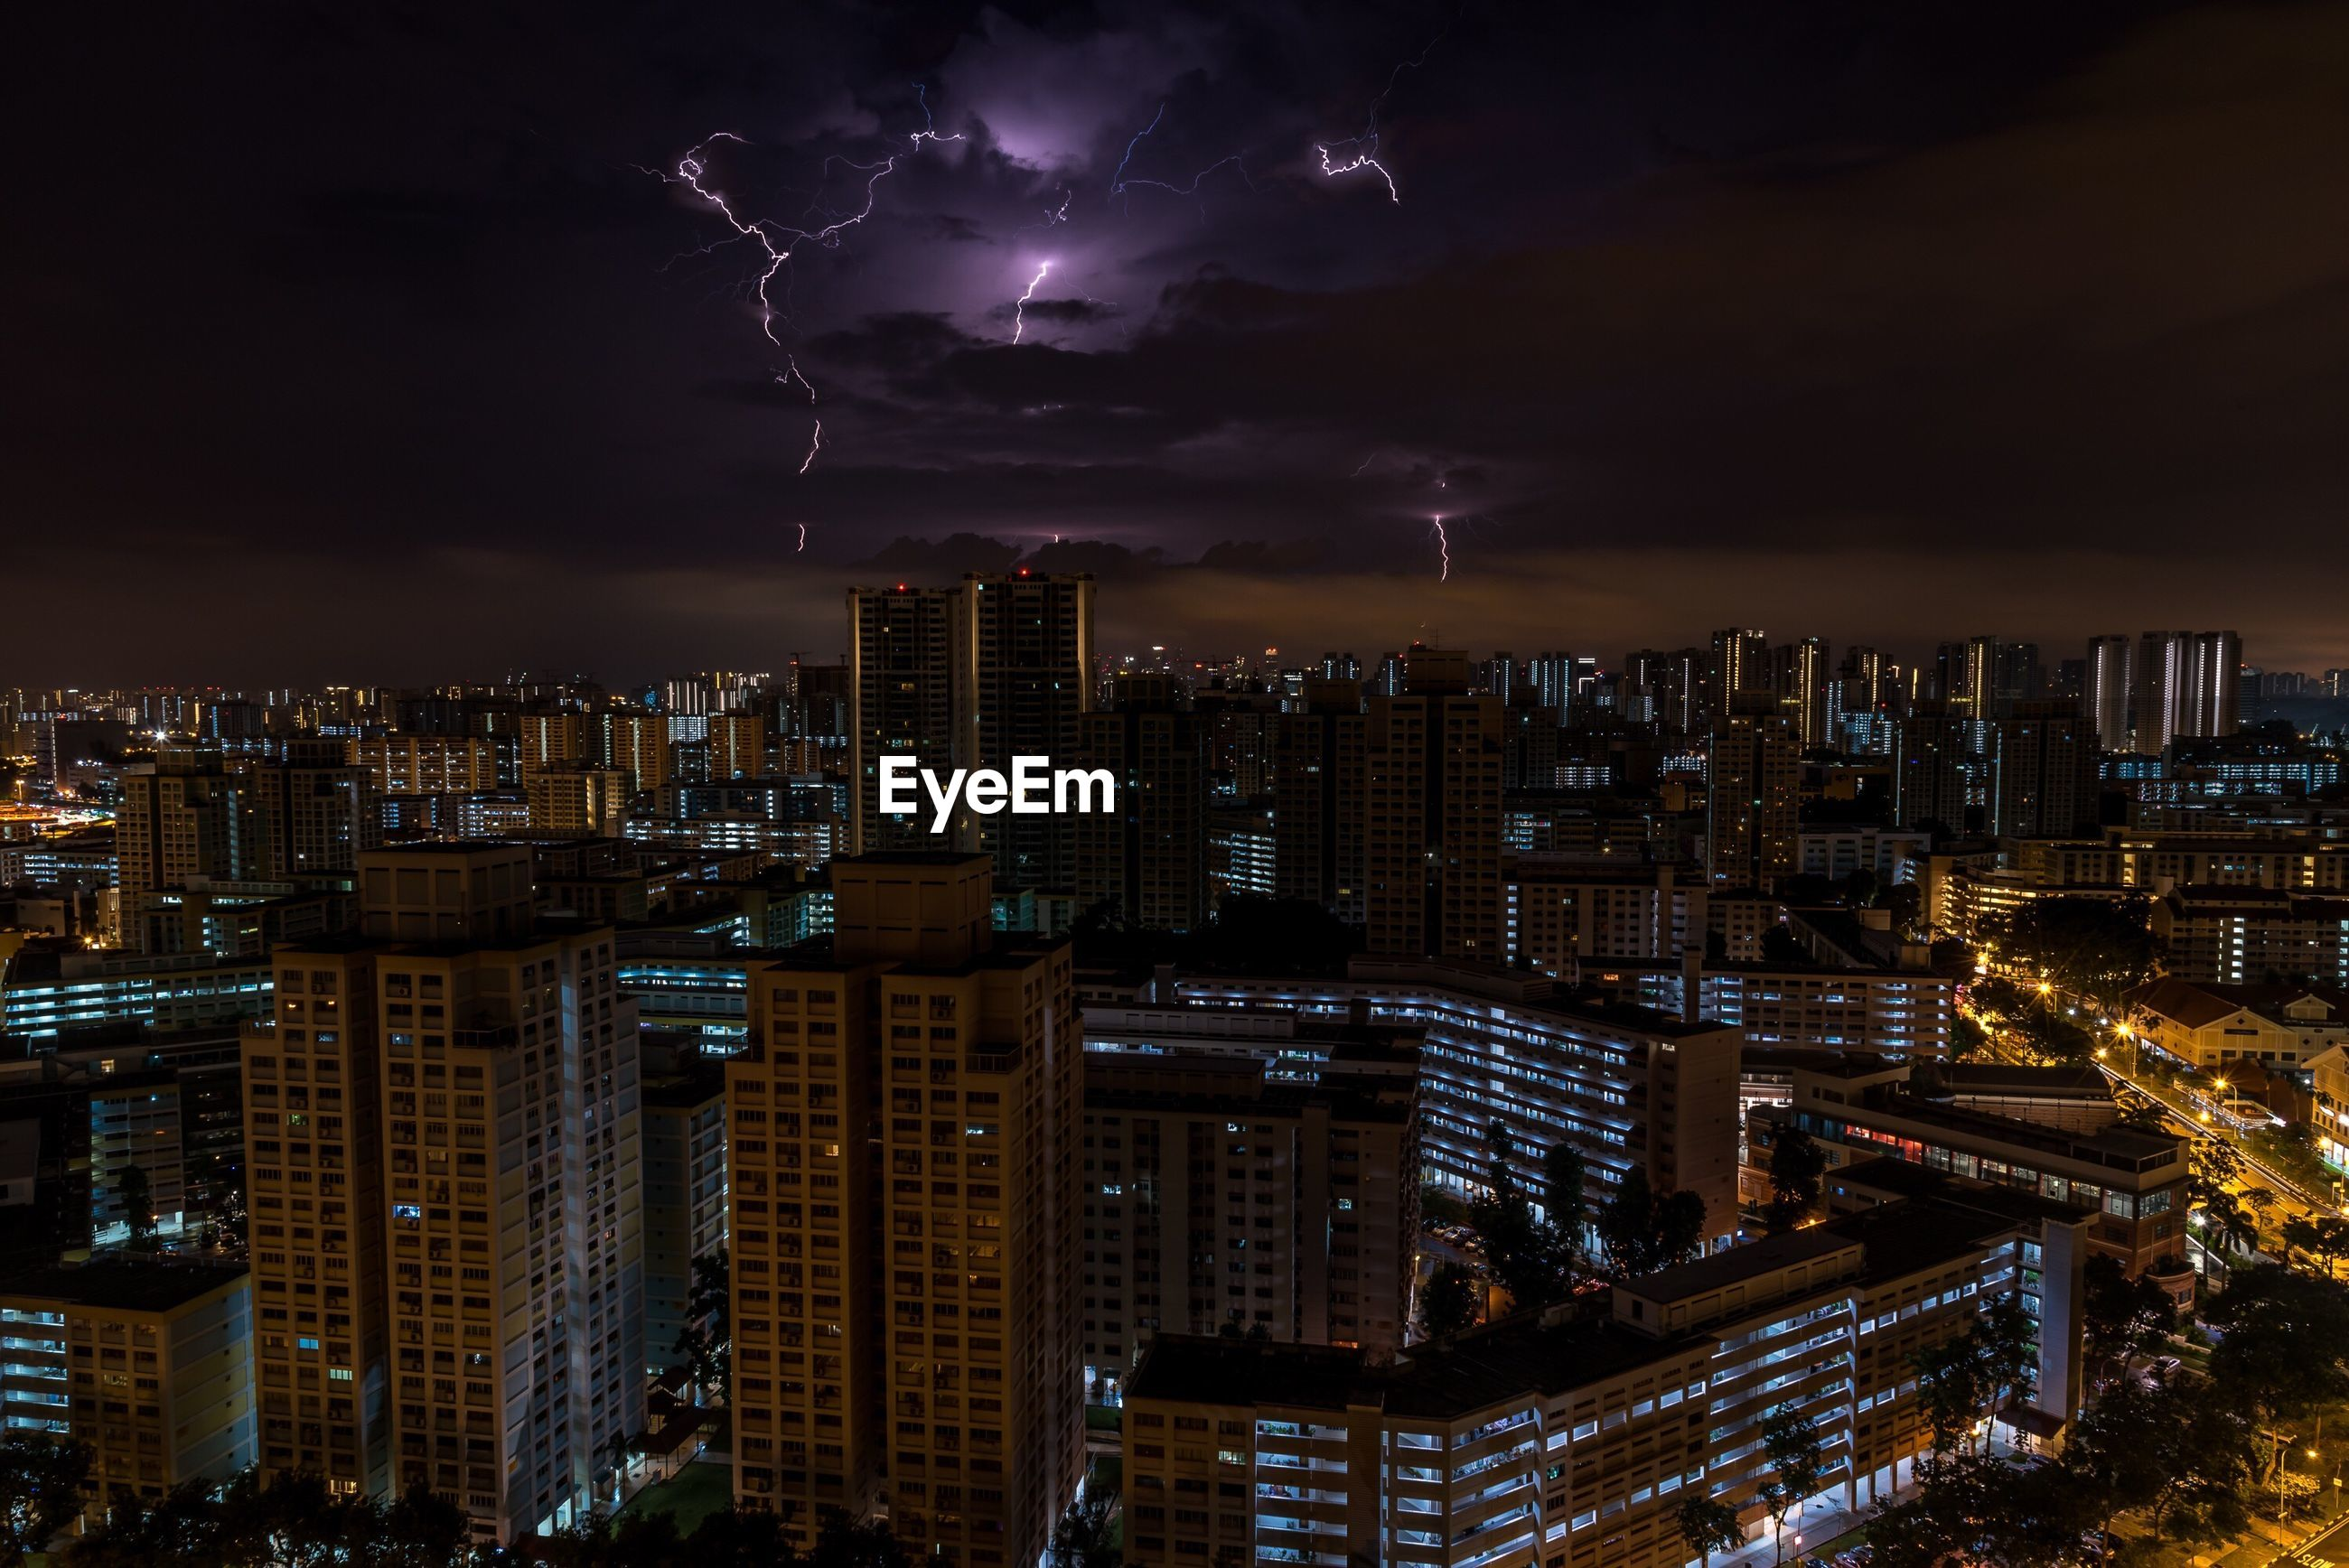 AERIAL VIEW OF ILLUMINATED CITY AGAINST CLOUDY SKY